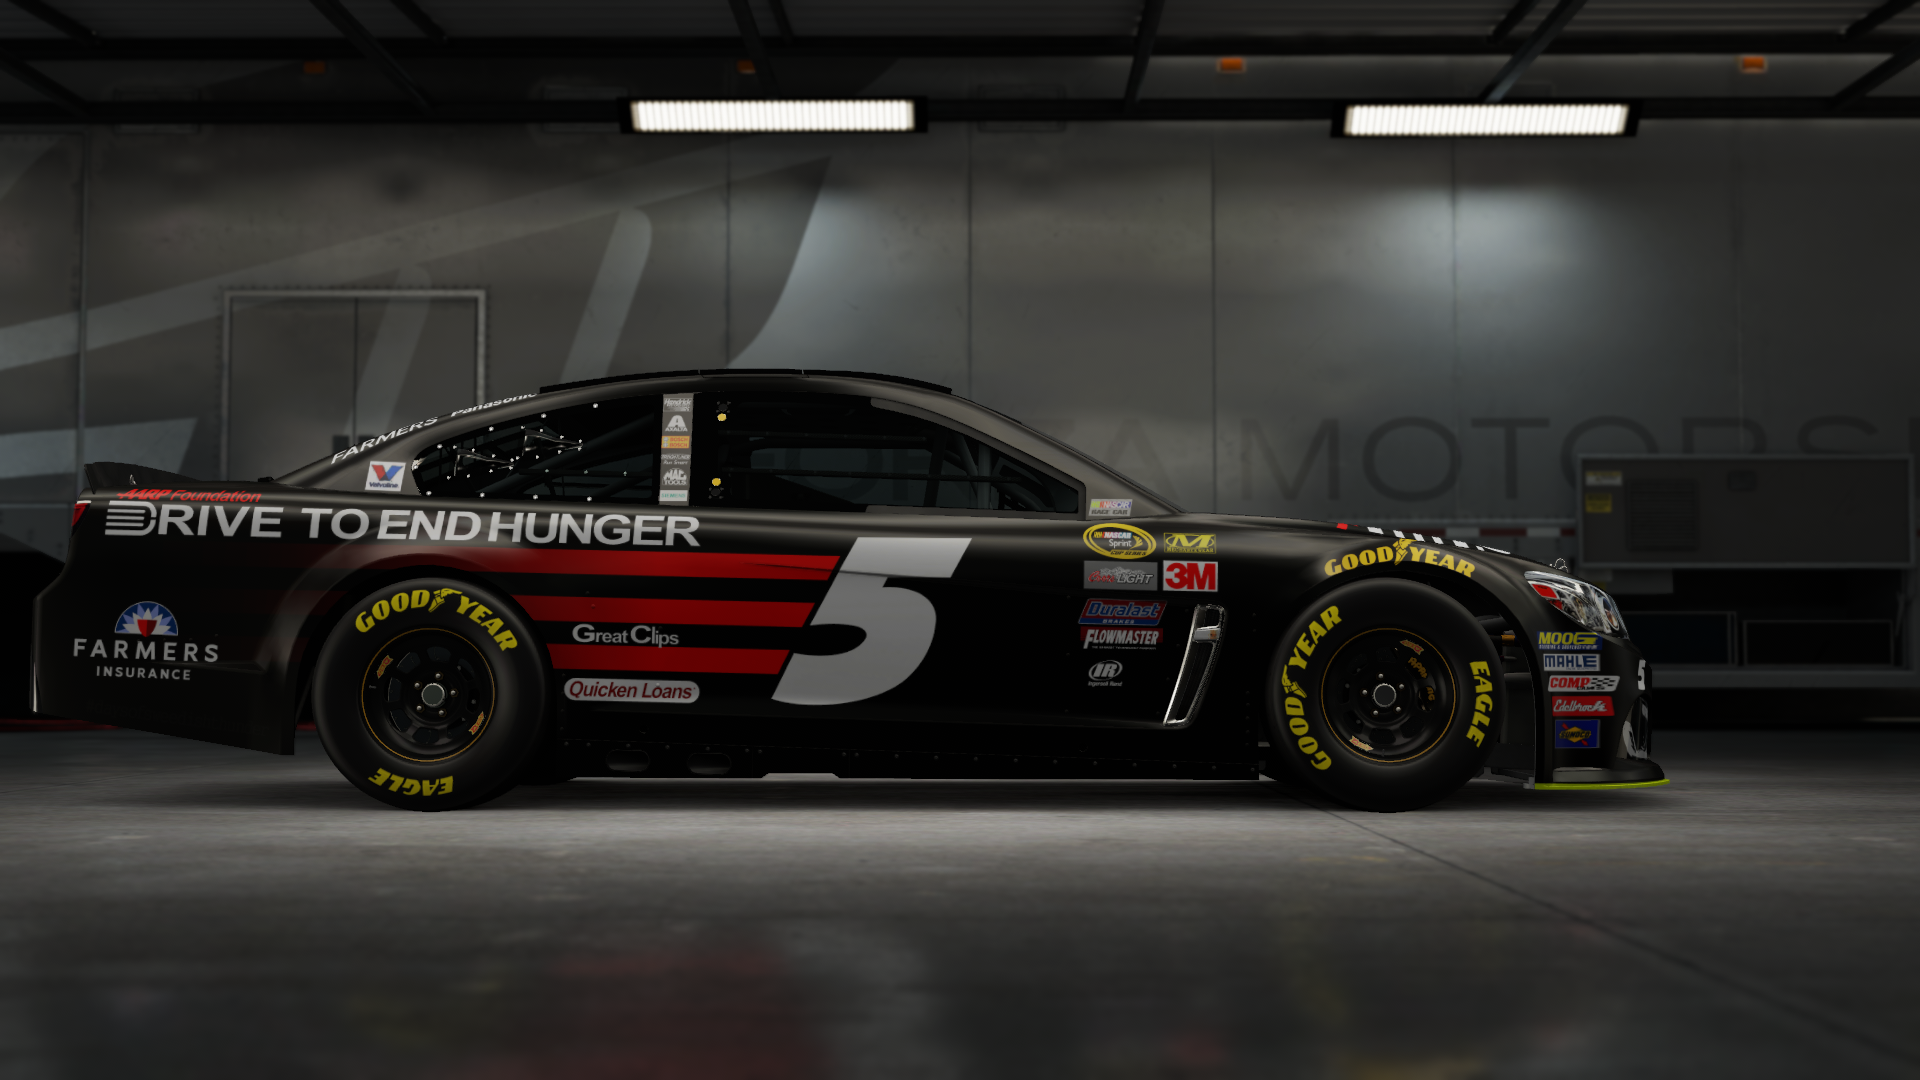 On the #5 Hendrick Motorsports Great Clips Super Sport, Made by SweedishThunder